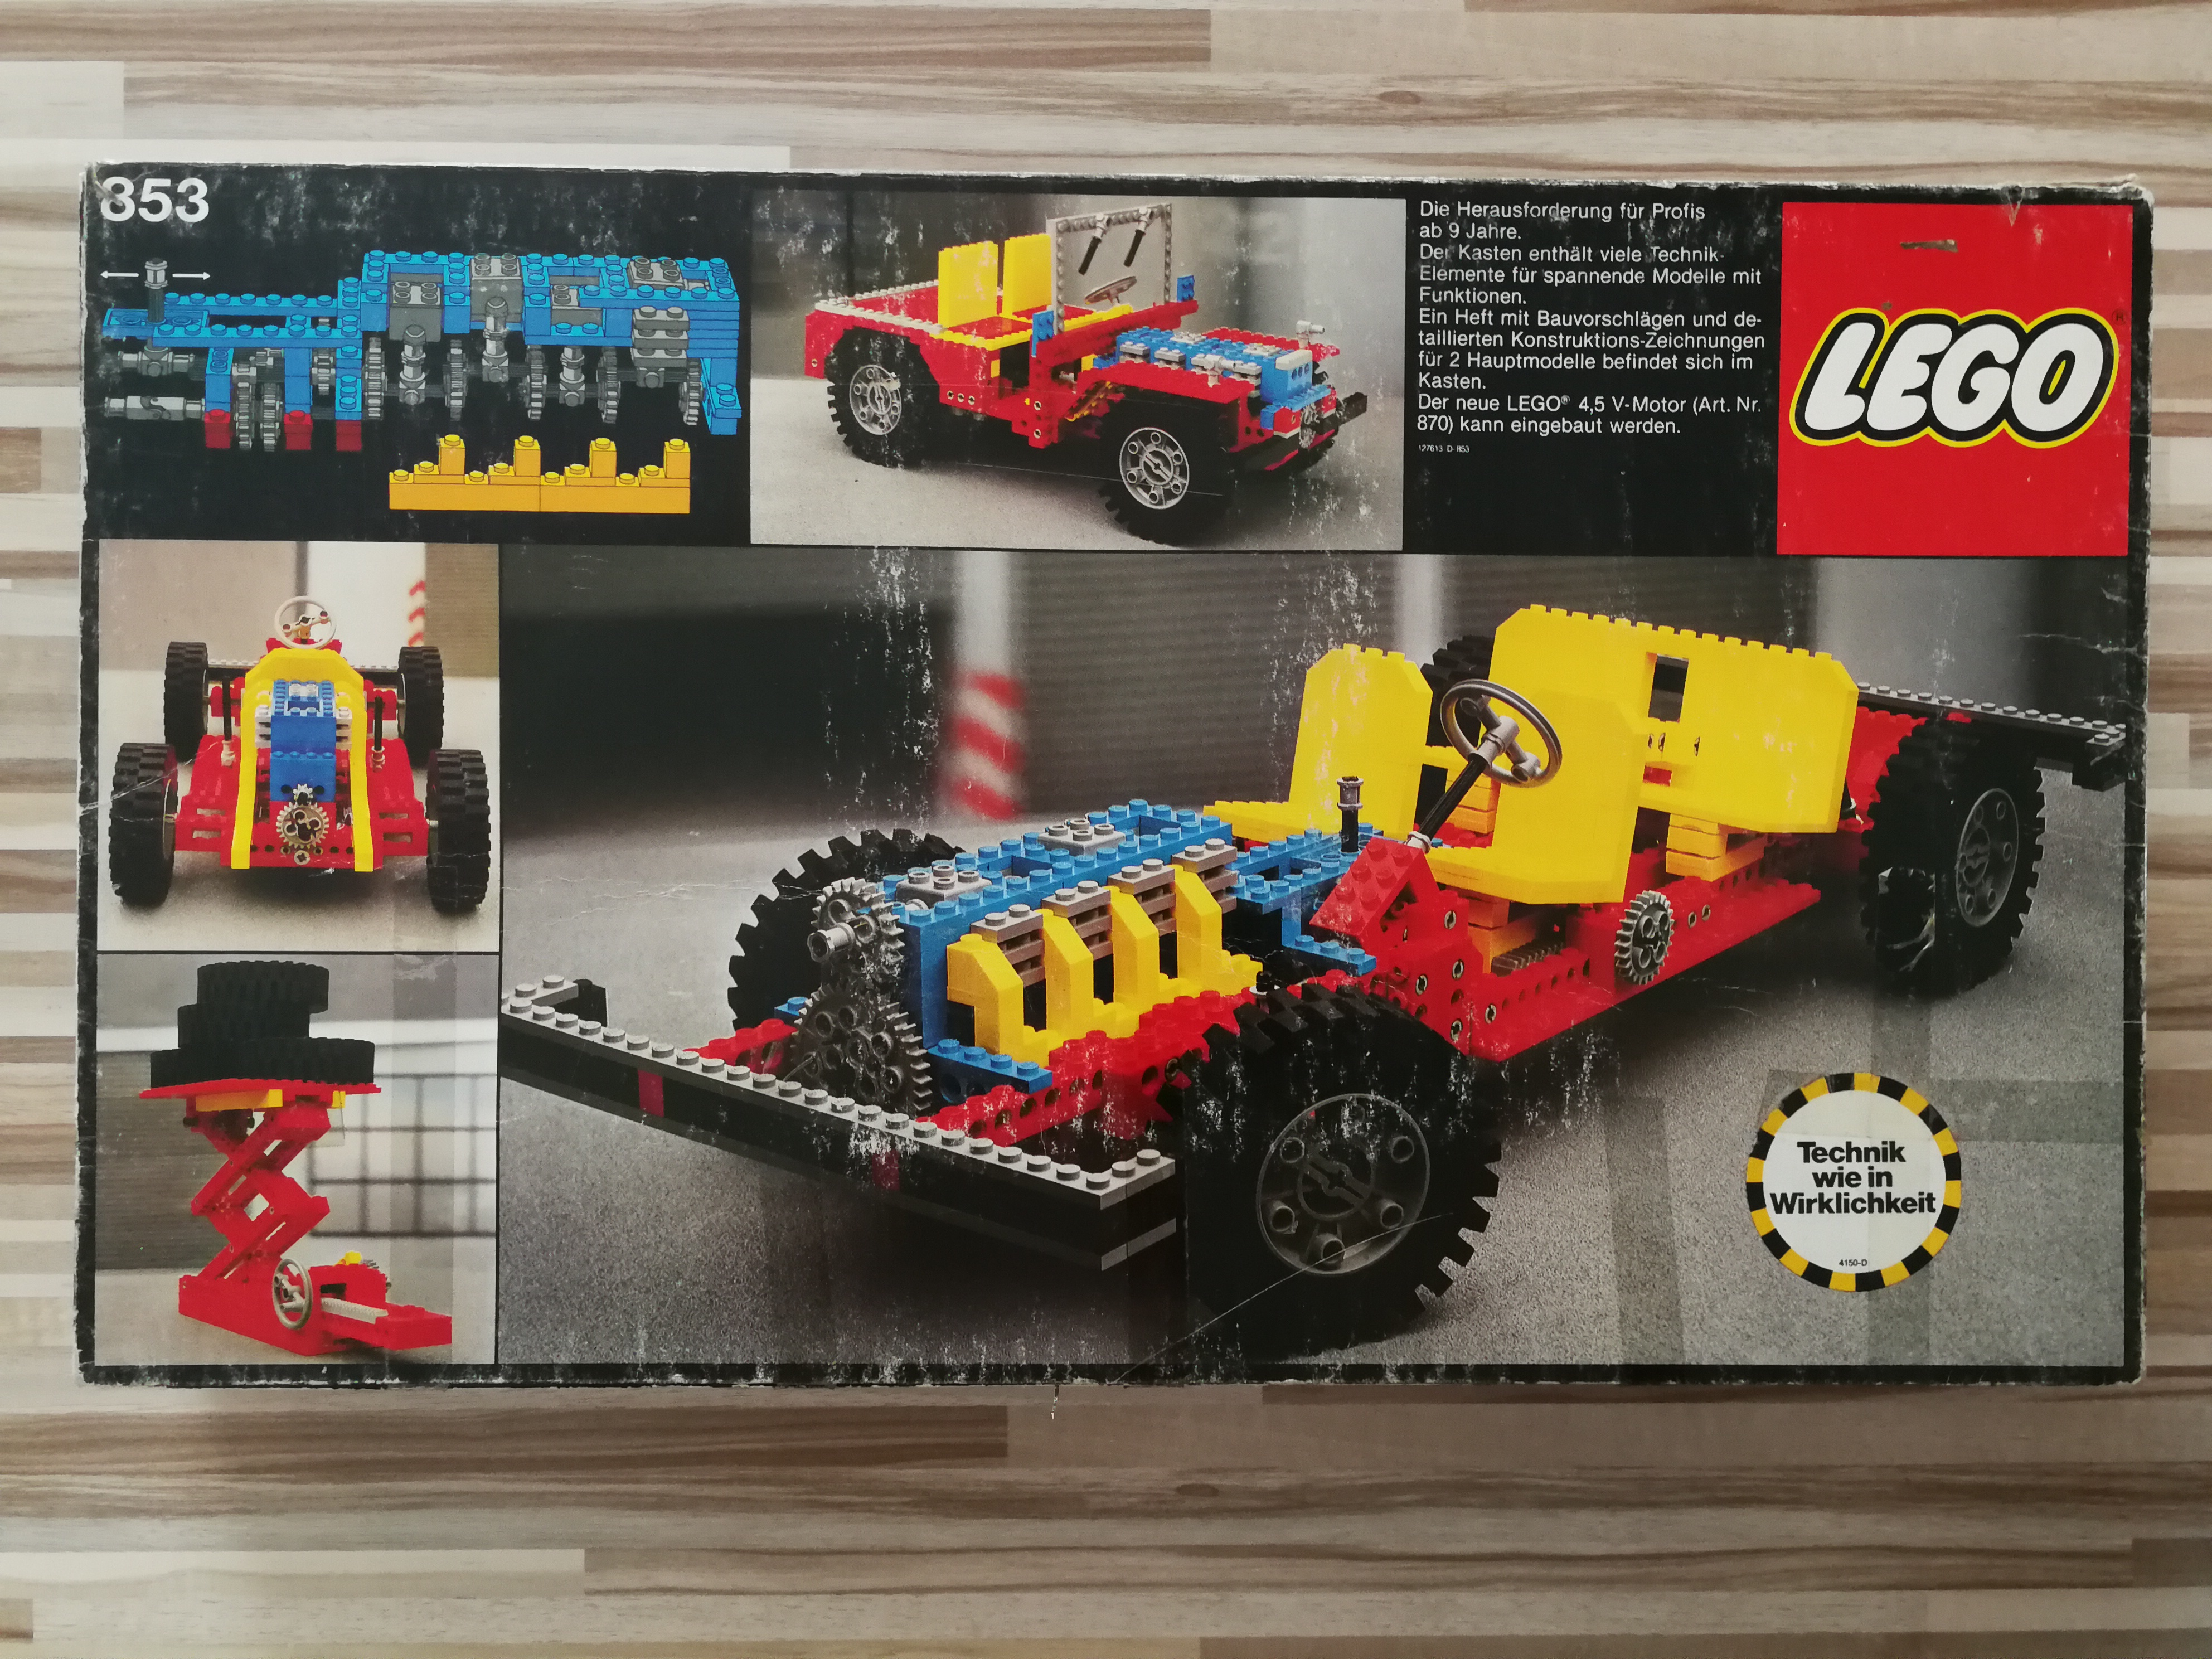 Lego Technic Car Ingmars Vintage Blog